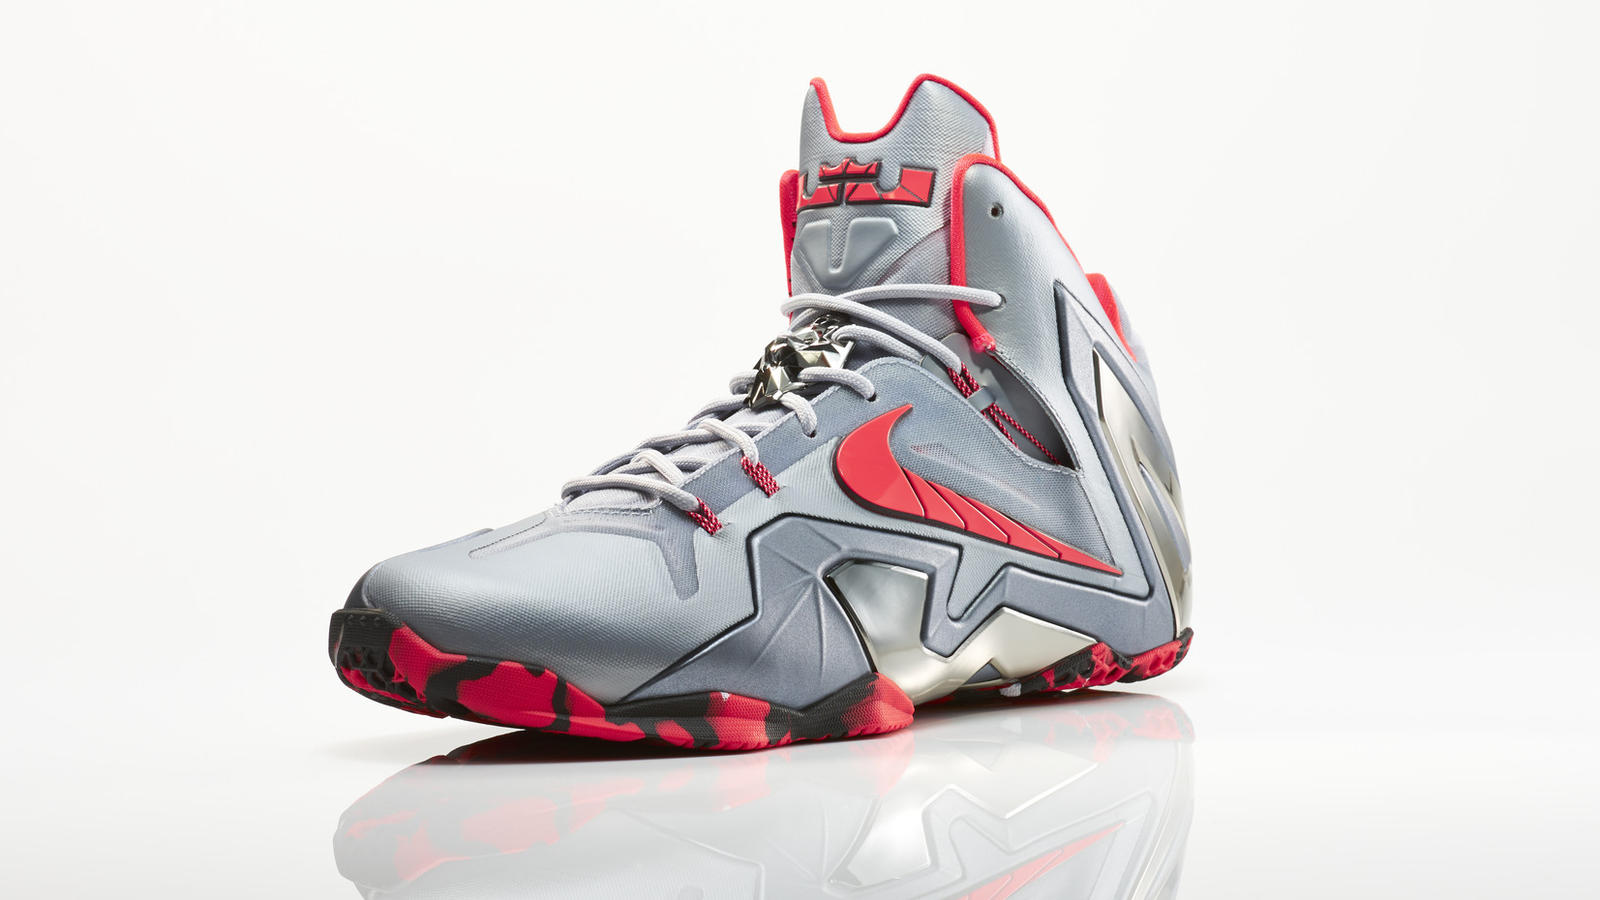 su14_bb_lebron11_elite_642846_001_return_3qtr_16921